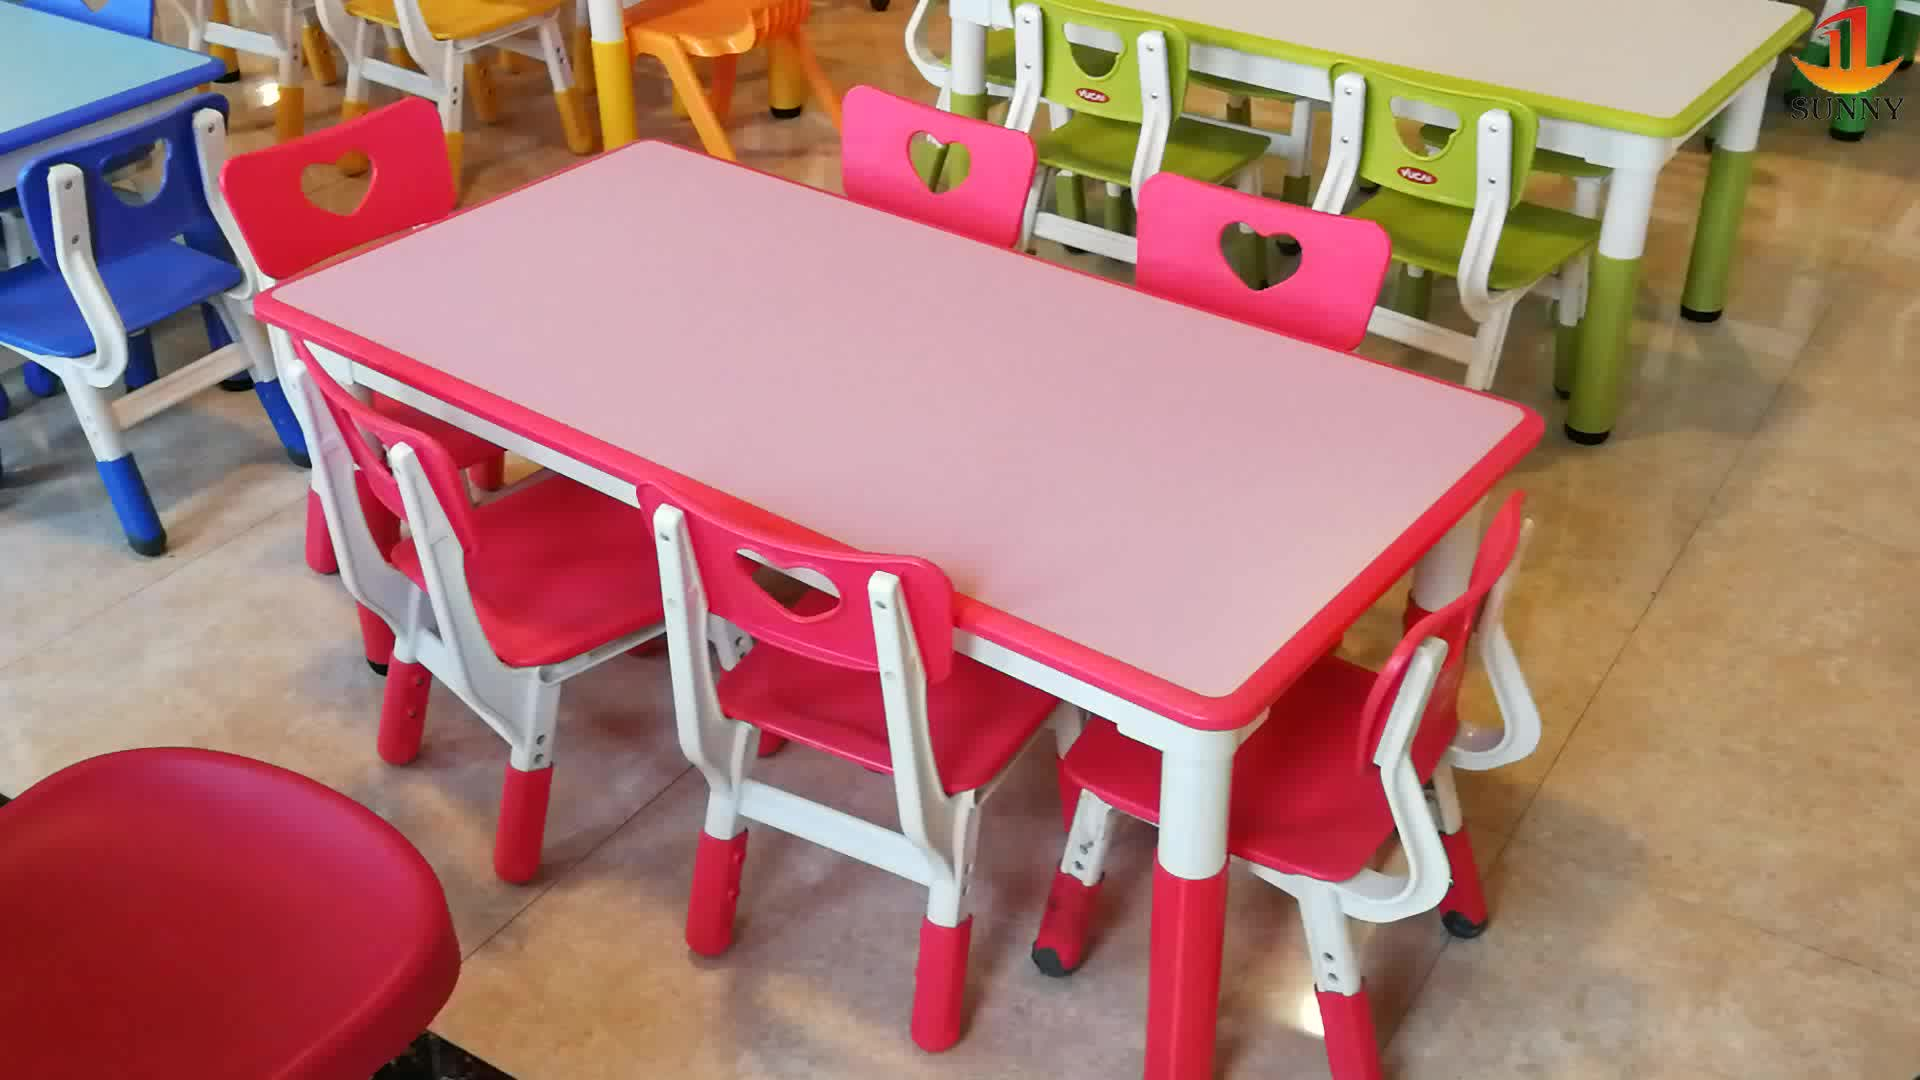 table smith banner school system types furniture classroom page tables